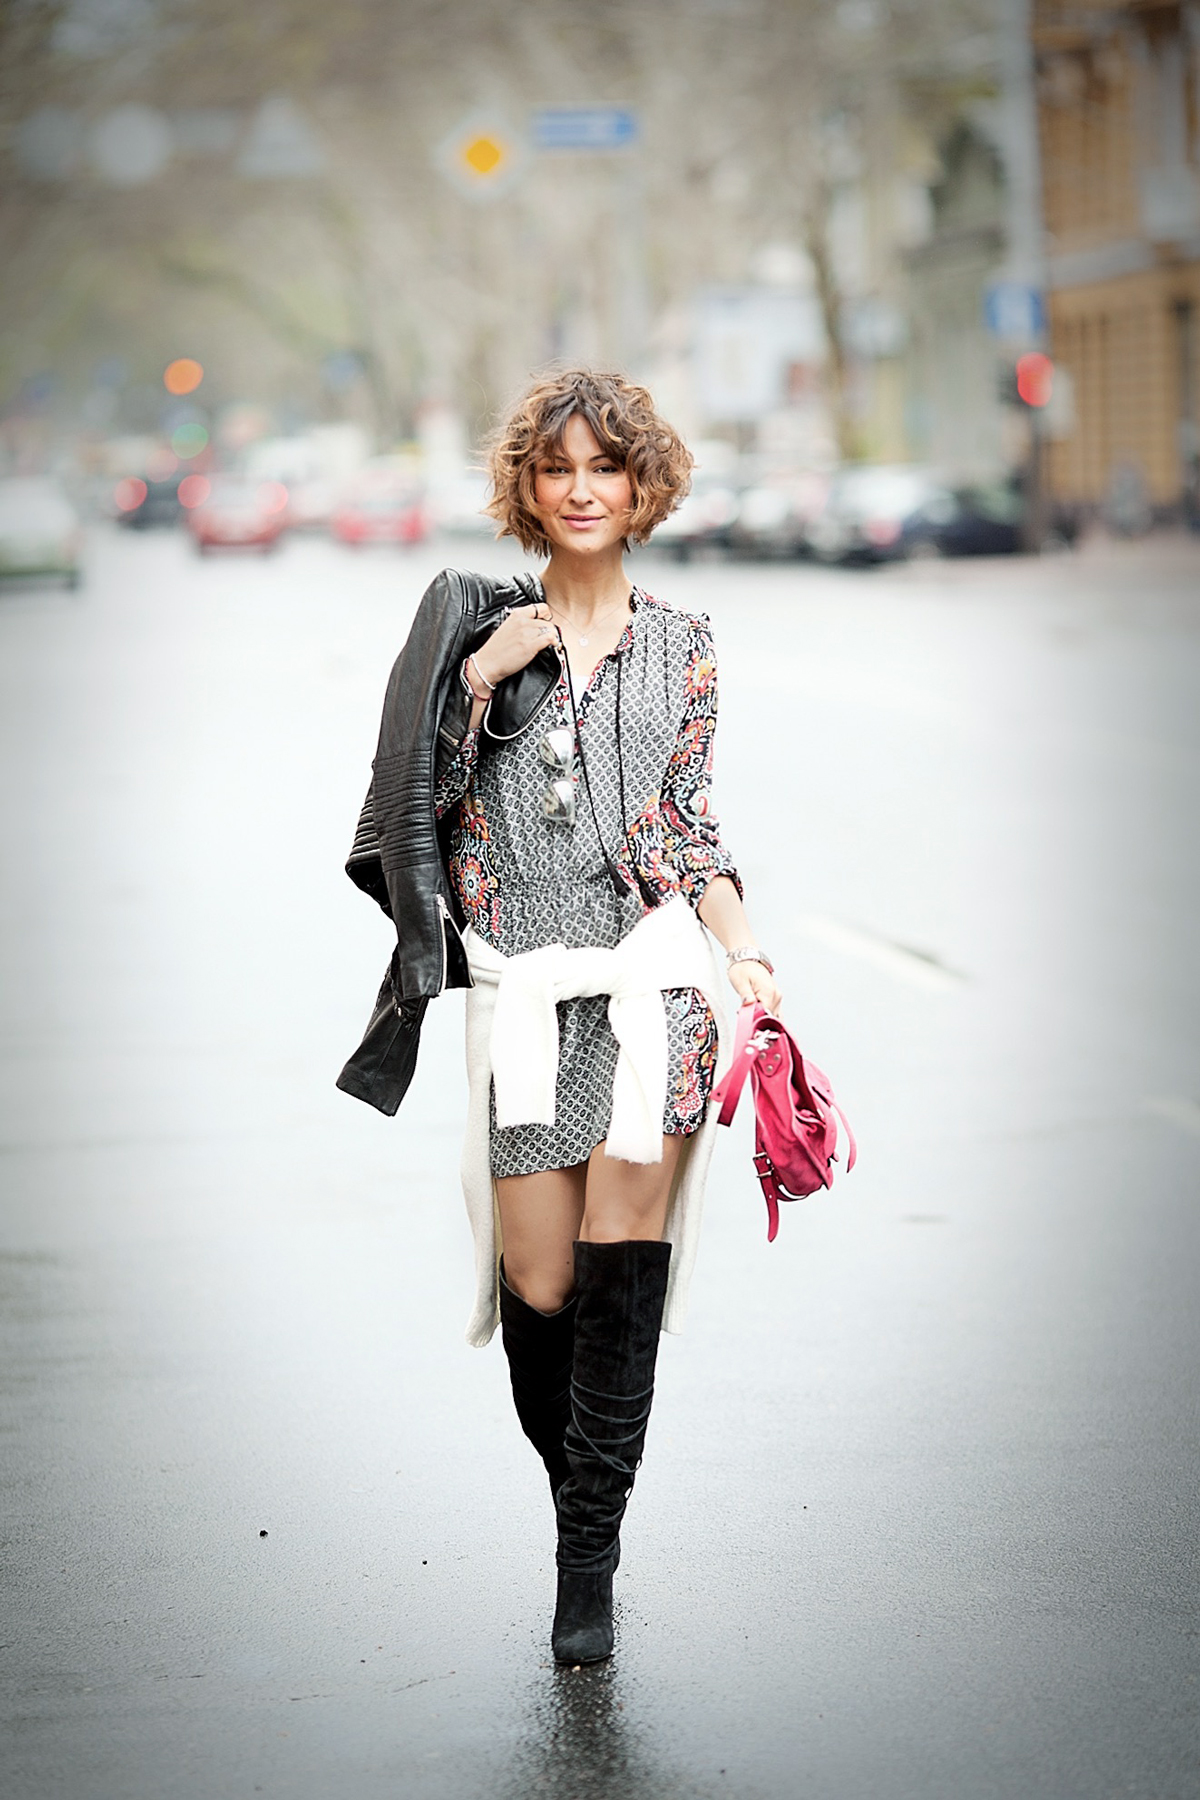 cute dress outfit with high boots and bikers jacket on street style blogger GalantGirl.com